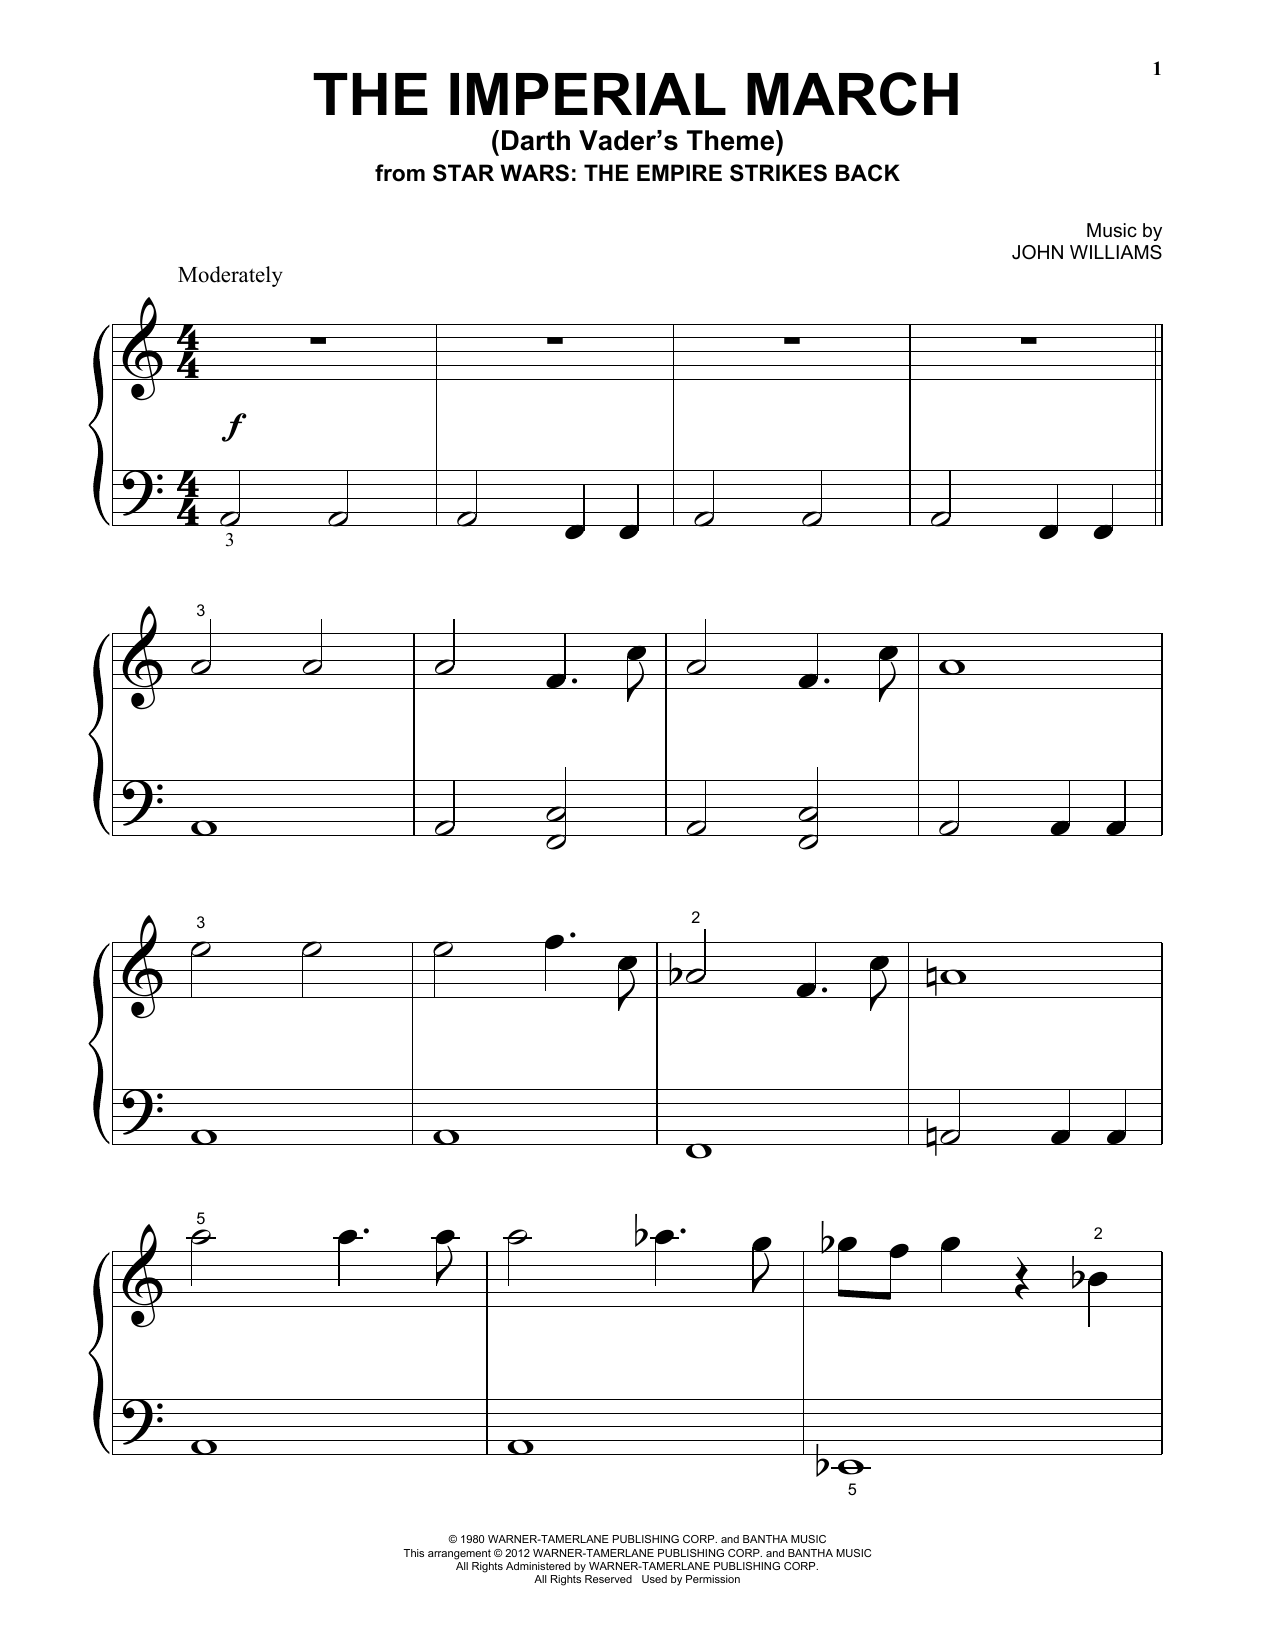 John Williams The Imperial March (Darth Vader's Theme) sheet music notes and chords. Download Printable PDF.